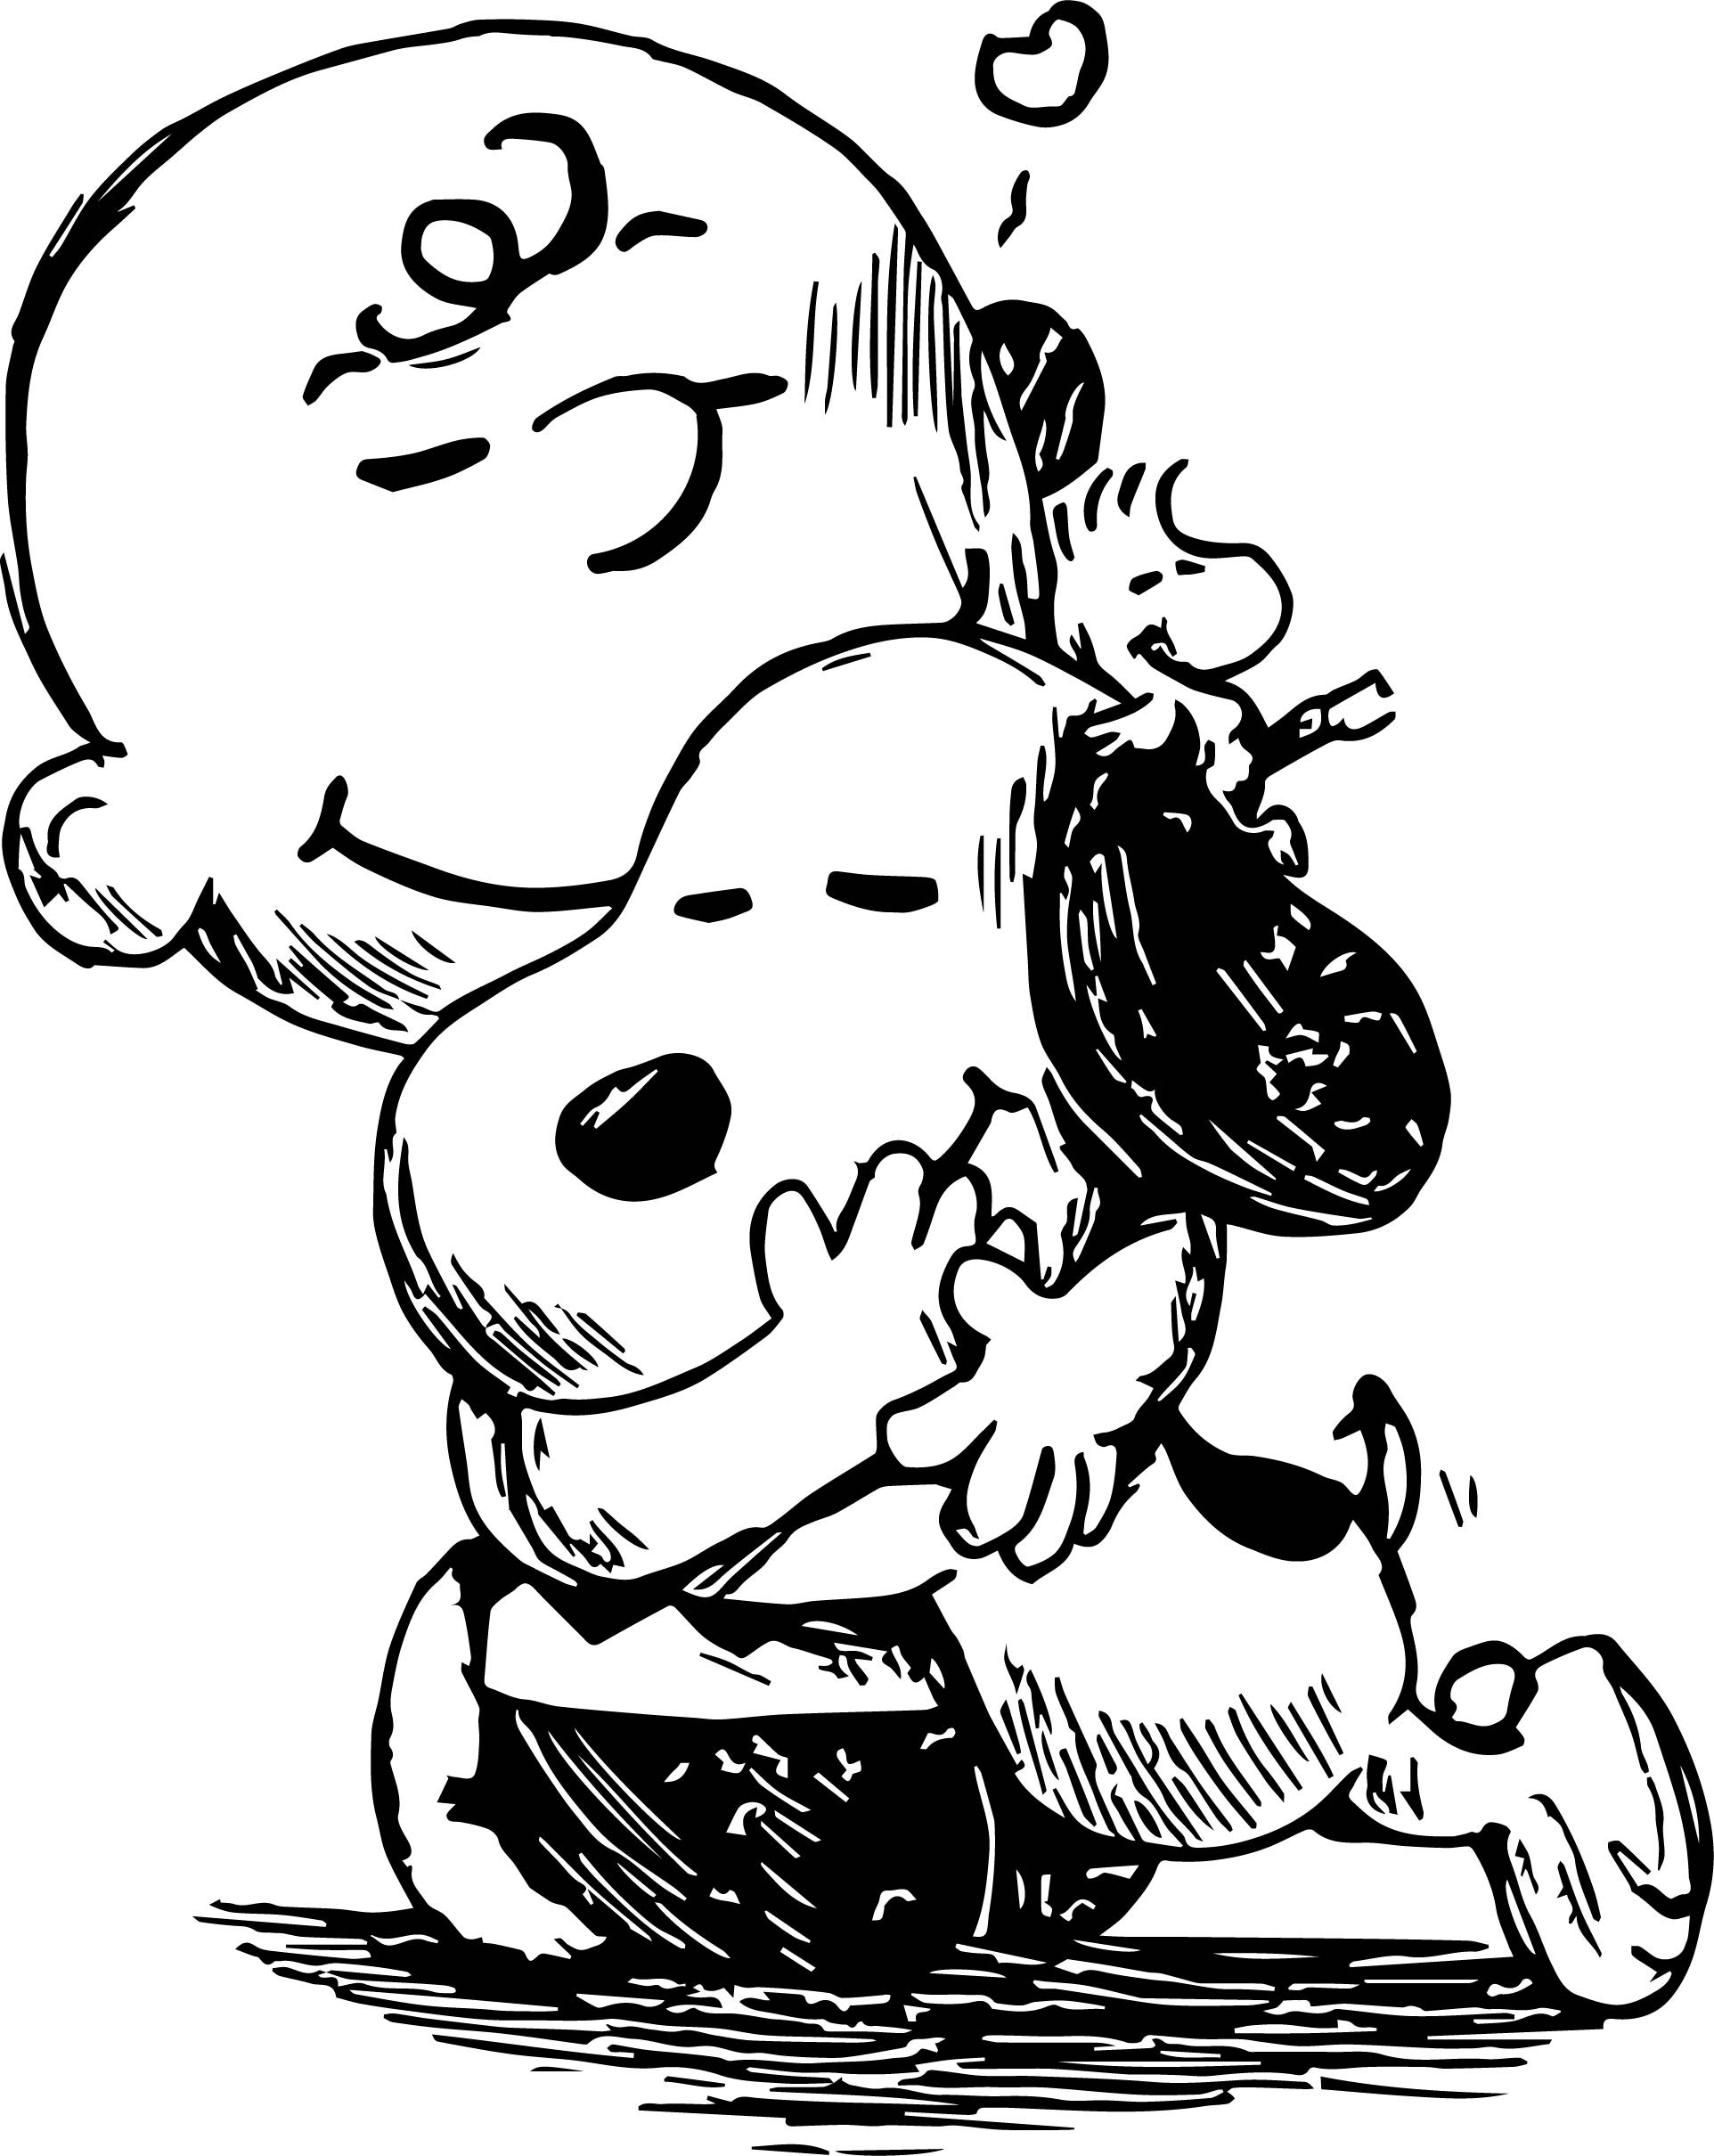 Snoopy And Charlie Brown Black White Sketch Coloring Page ...